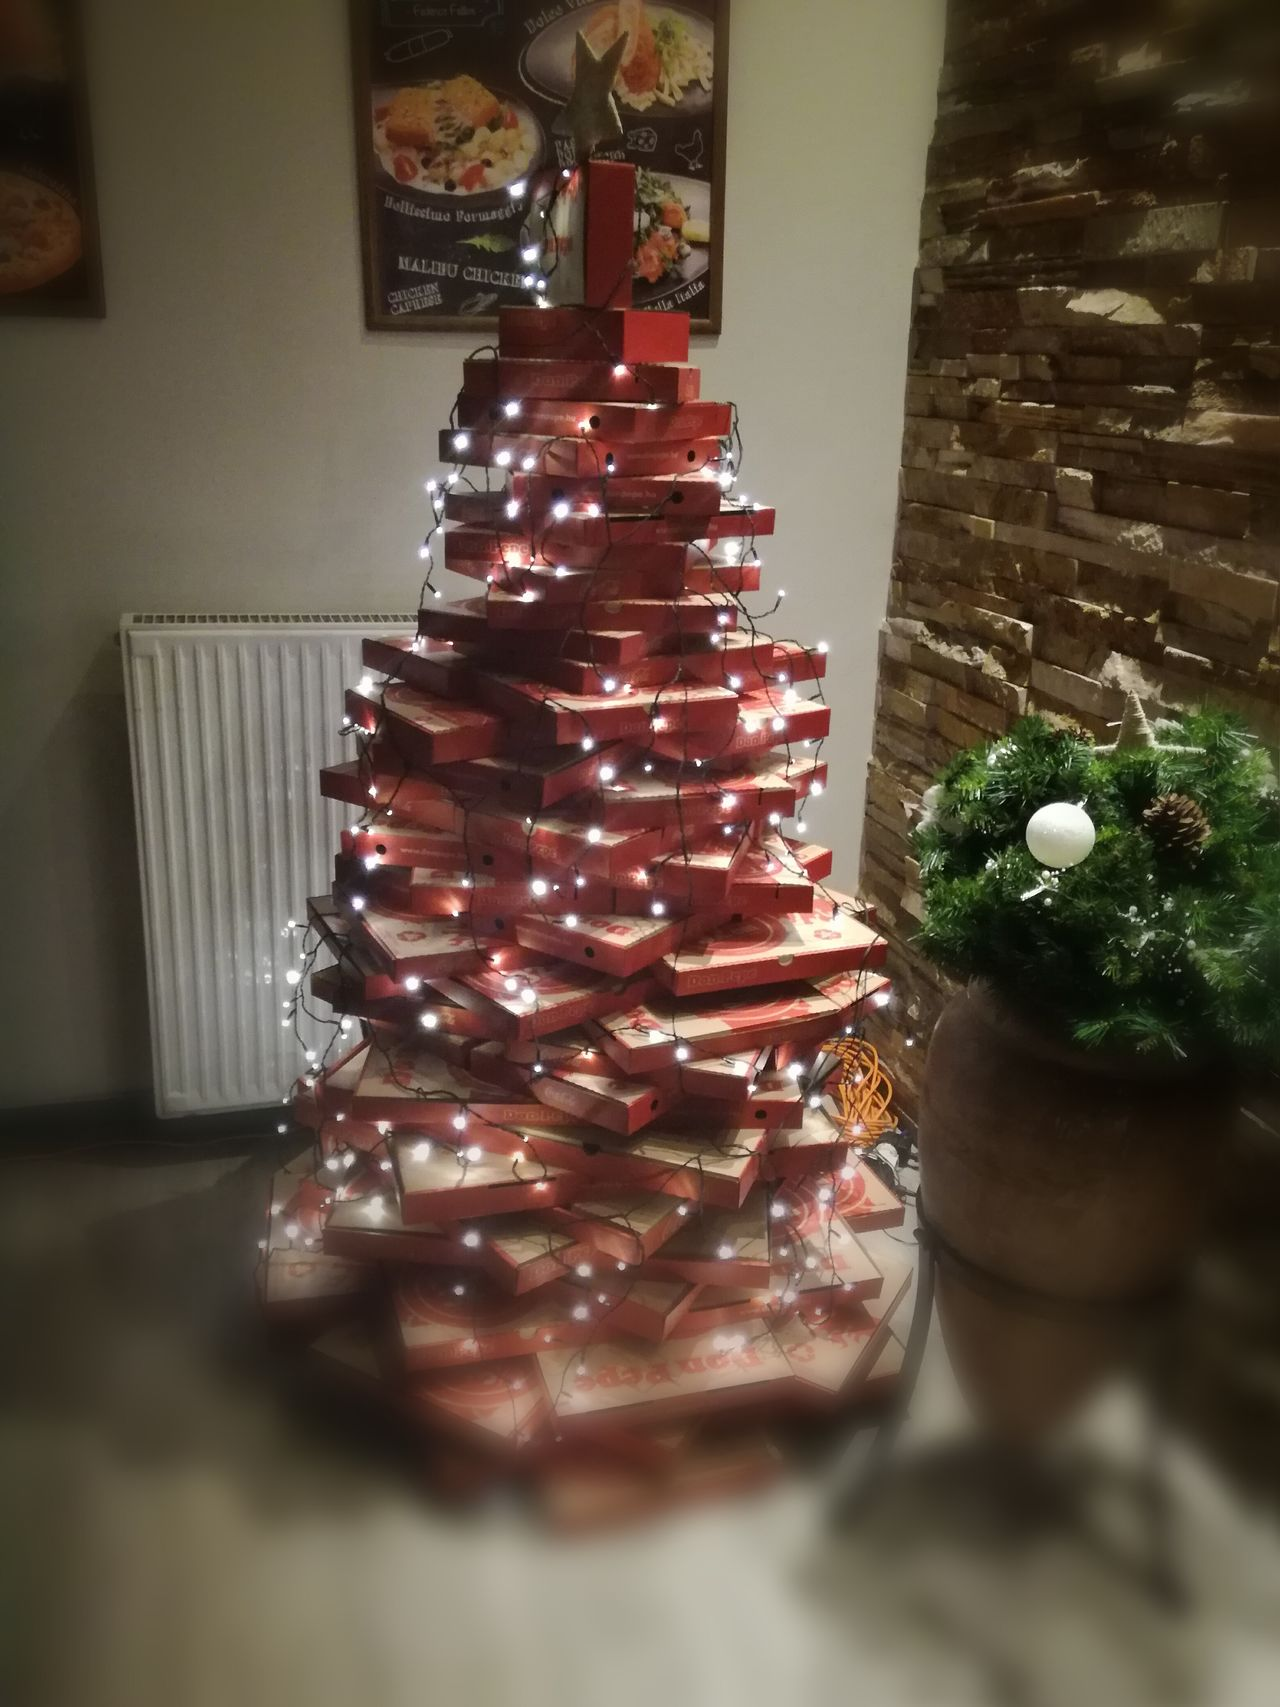 Christmas Tree Christmas Christmas Decoration Tree Celebration Indoors  Night Santa Budapest Paris ❤ Lifeisgood Goodnight Creative Think Positive On Fire MerryChristmas